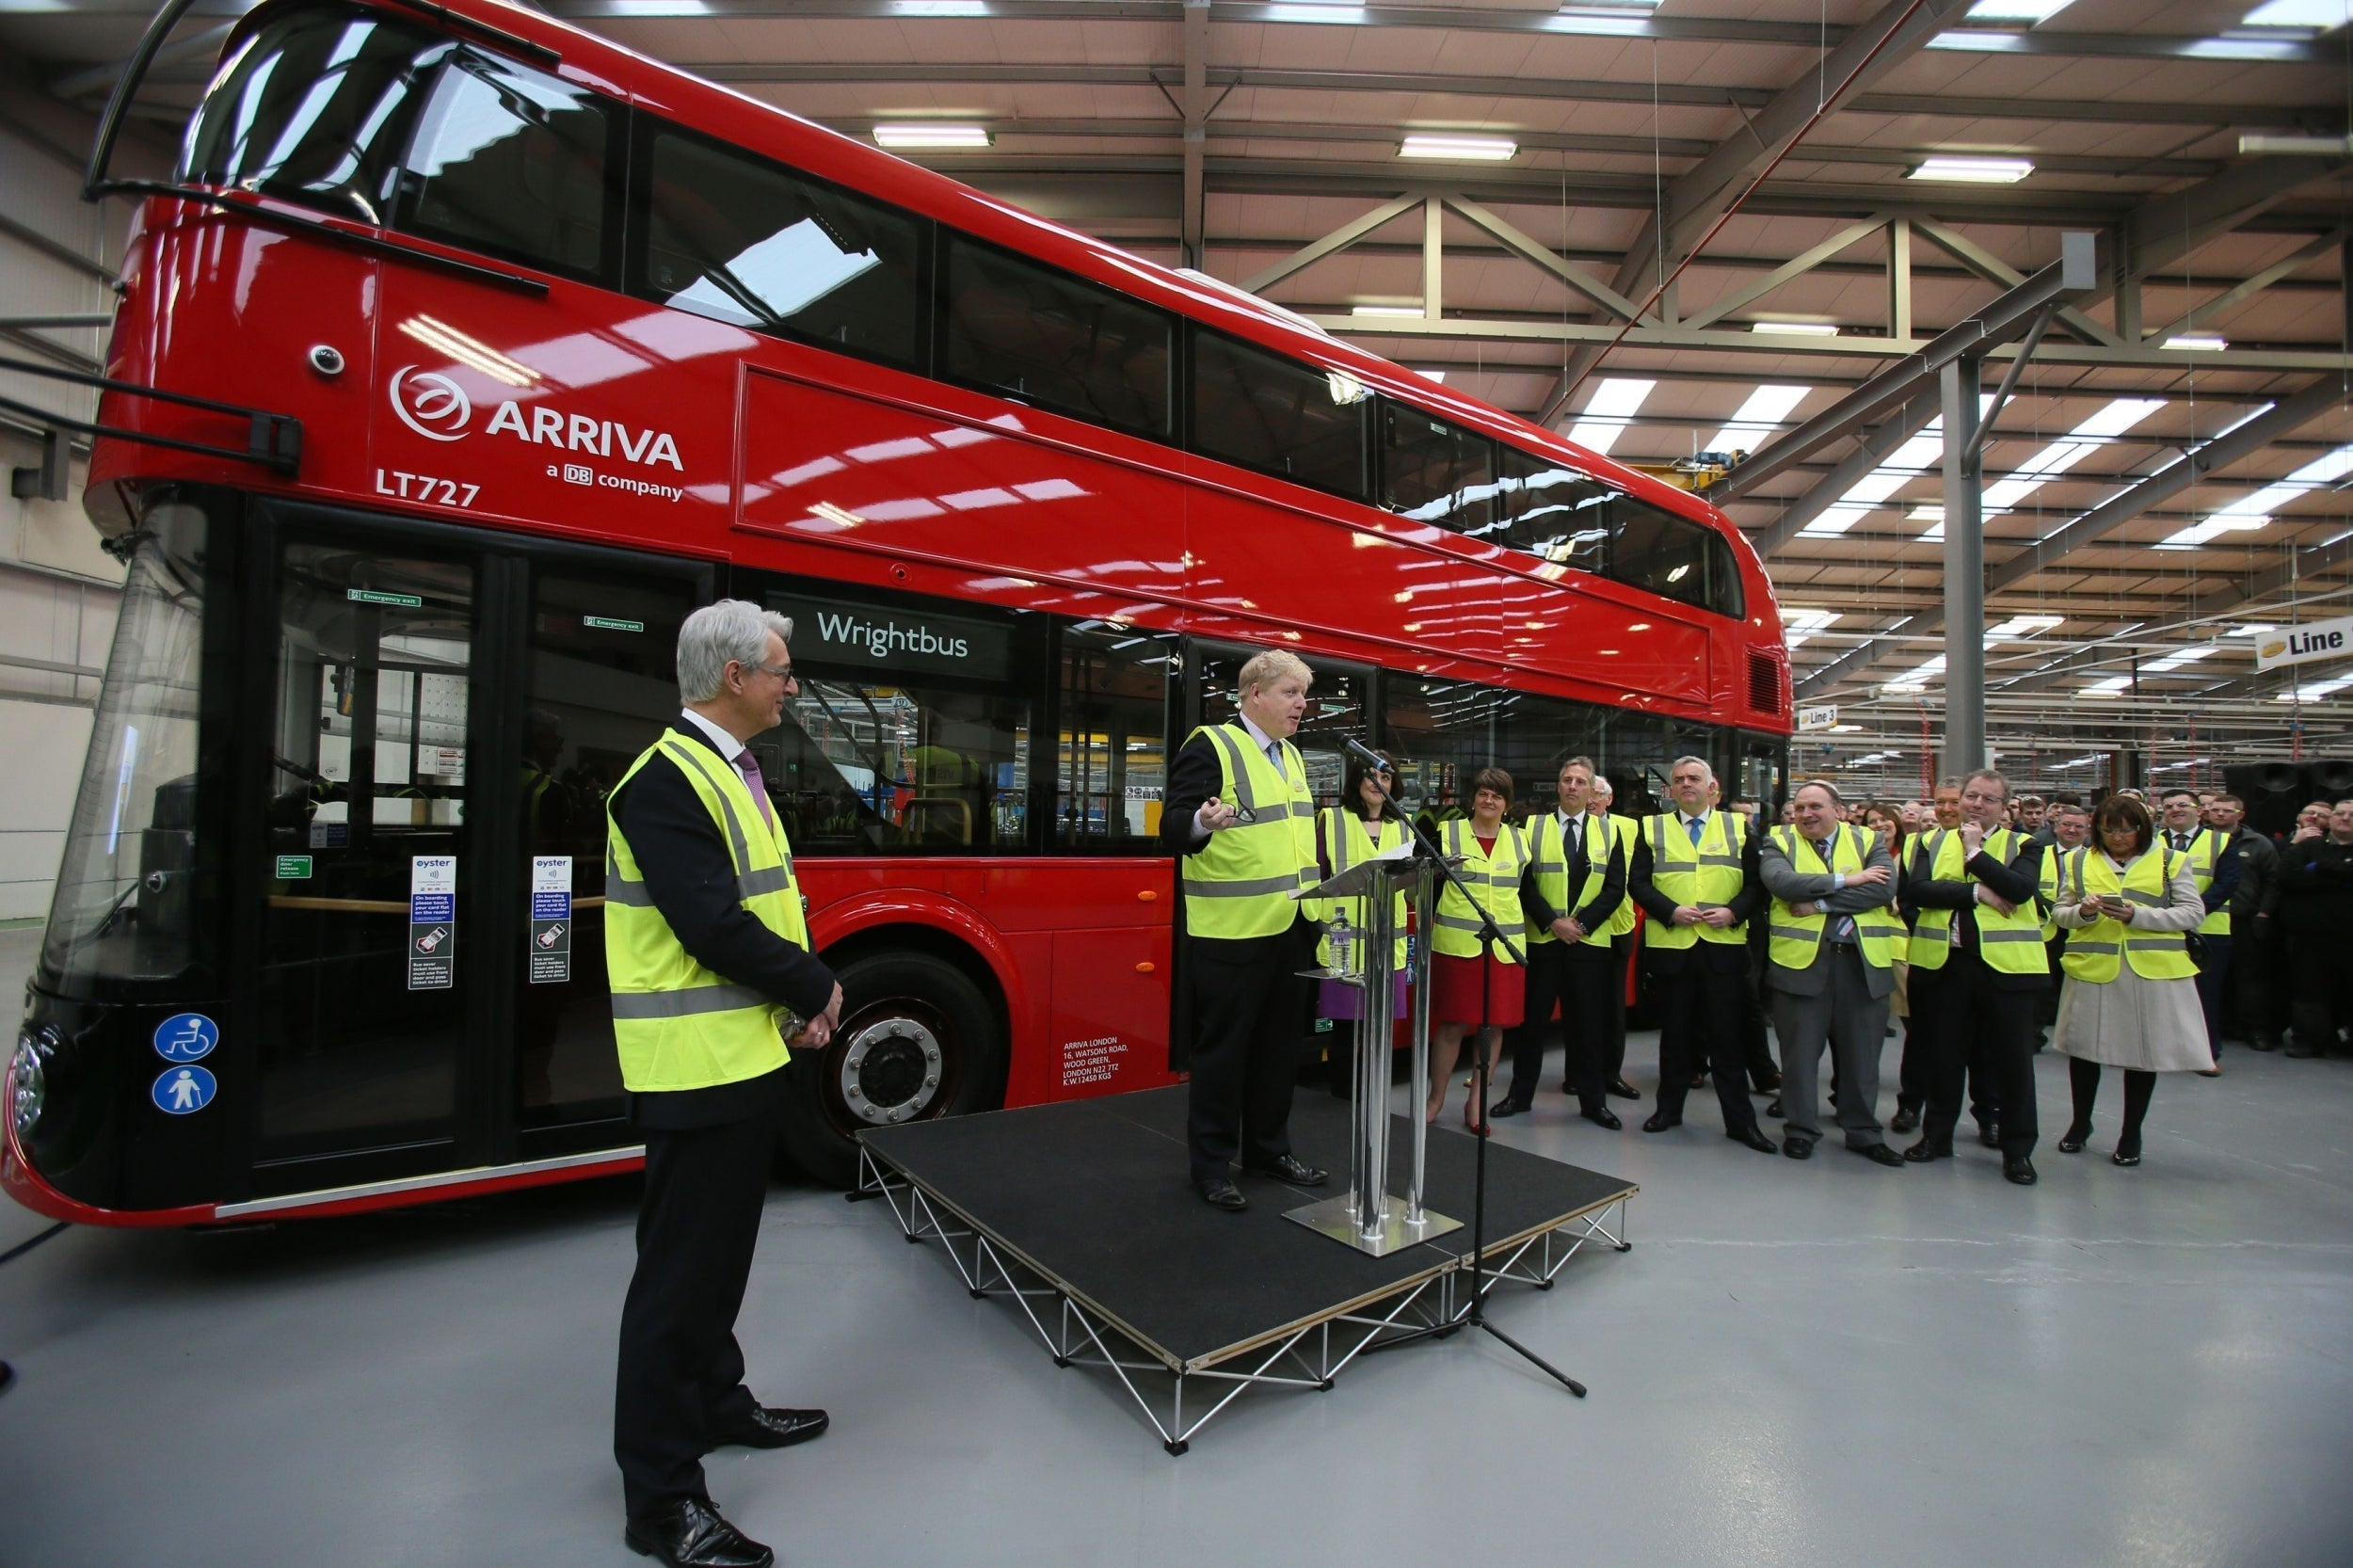 Maker of 'Boris Bus' collapses into administration, risking 1,400 jobs